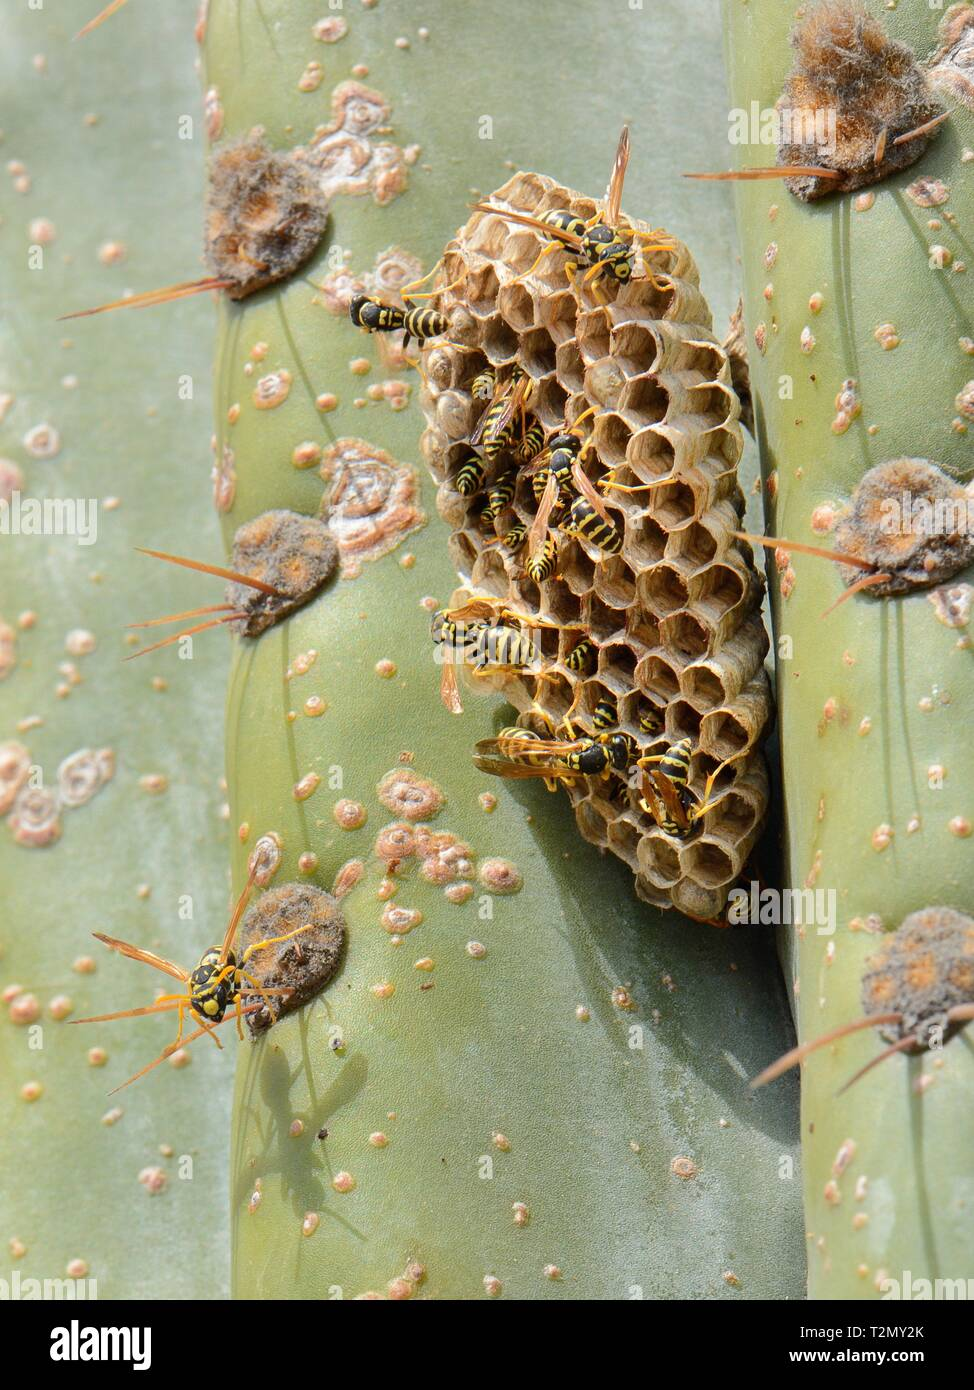 European paper wasp (Polistes dominula) colony at their nest on a large cactus, Mallorca, Spain, August. - Stock Image